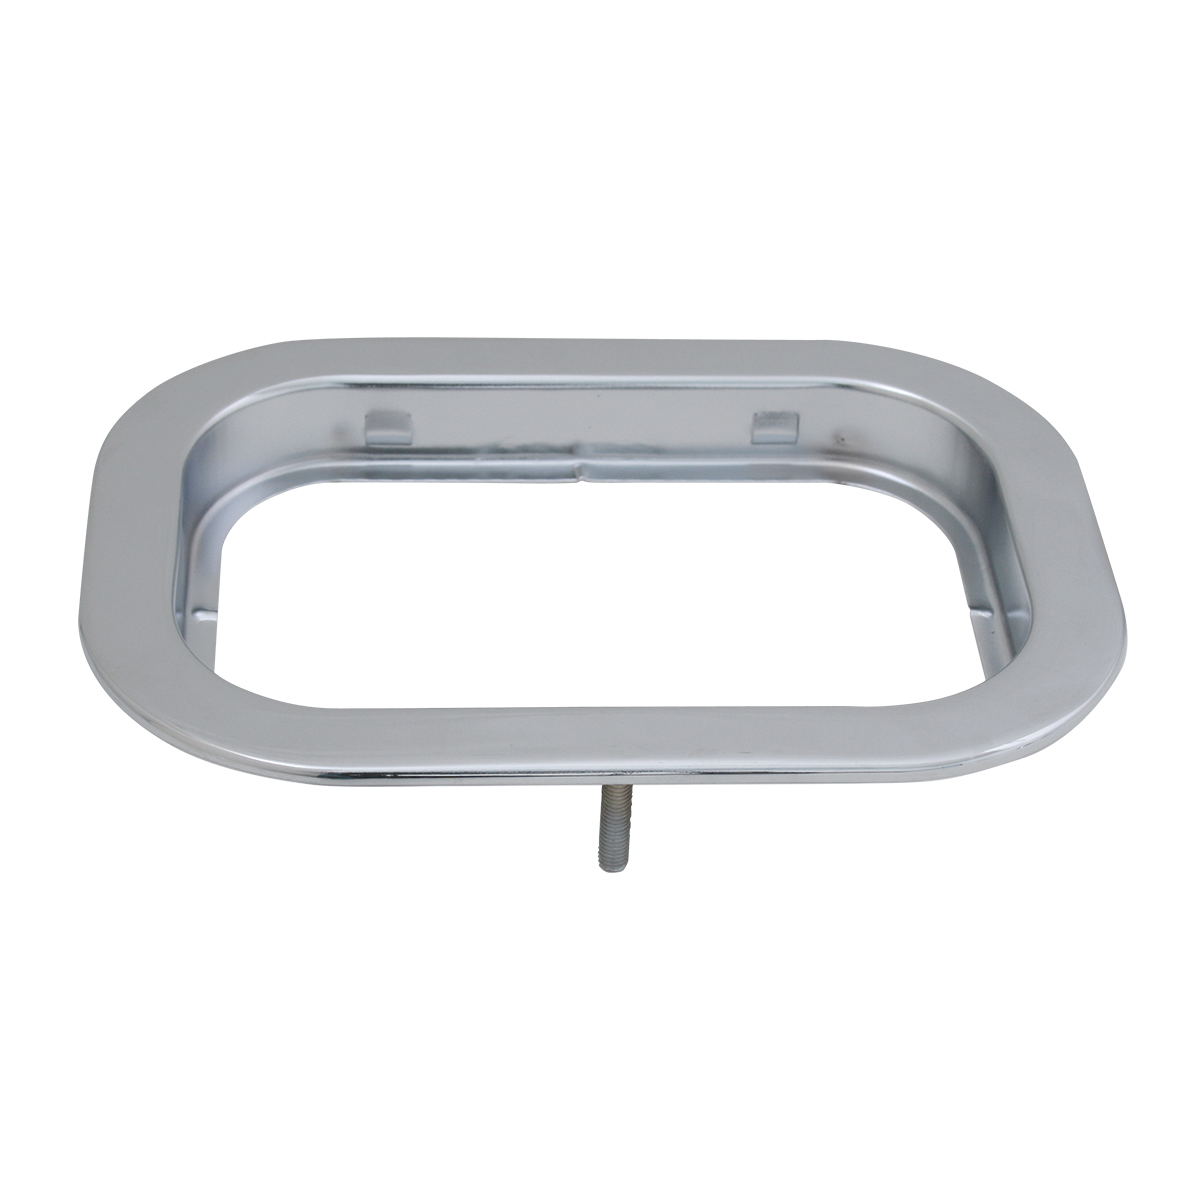 "80797 Chrome Flange Mount Bezel with Hidden Studs for 5.25"" Large Rectangular Light"